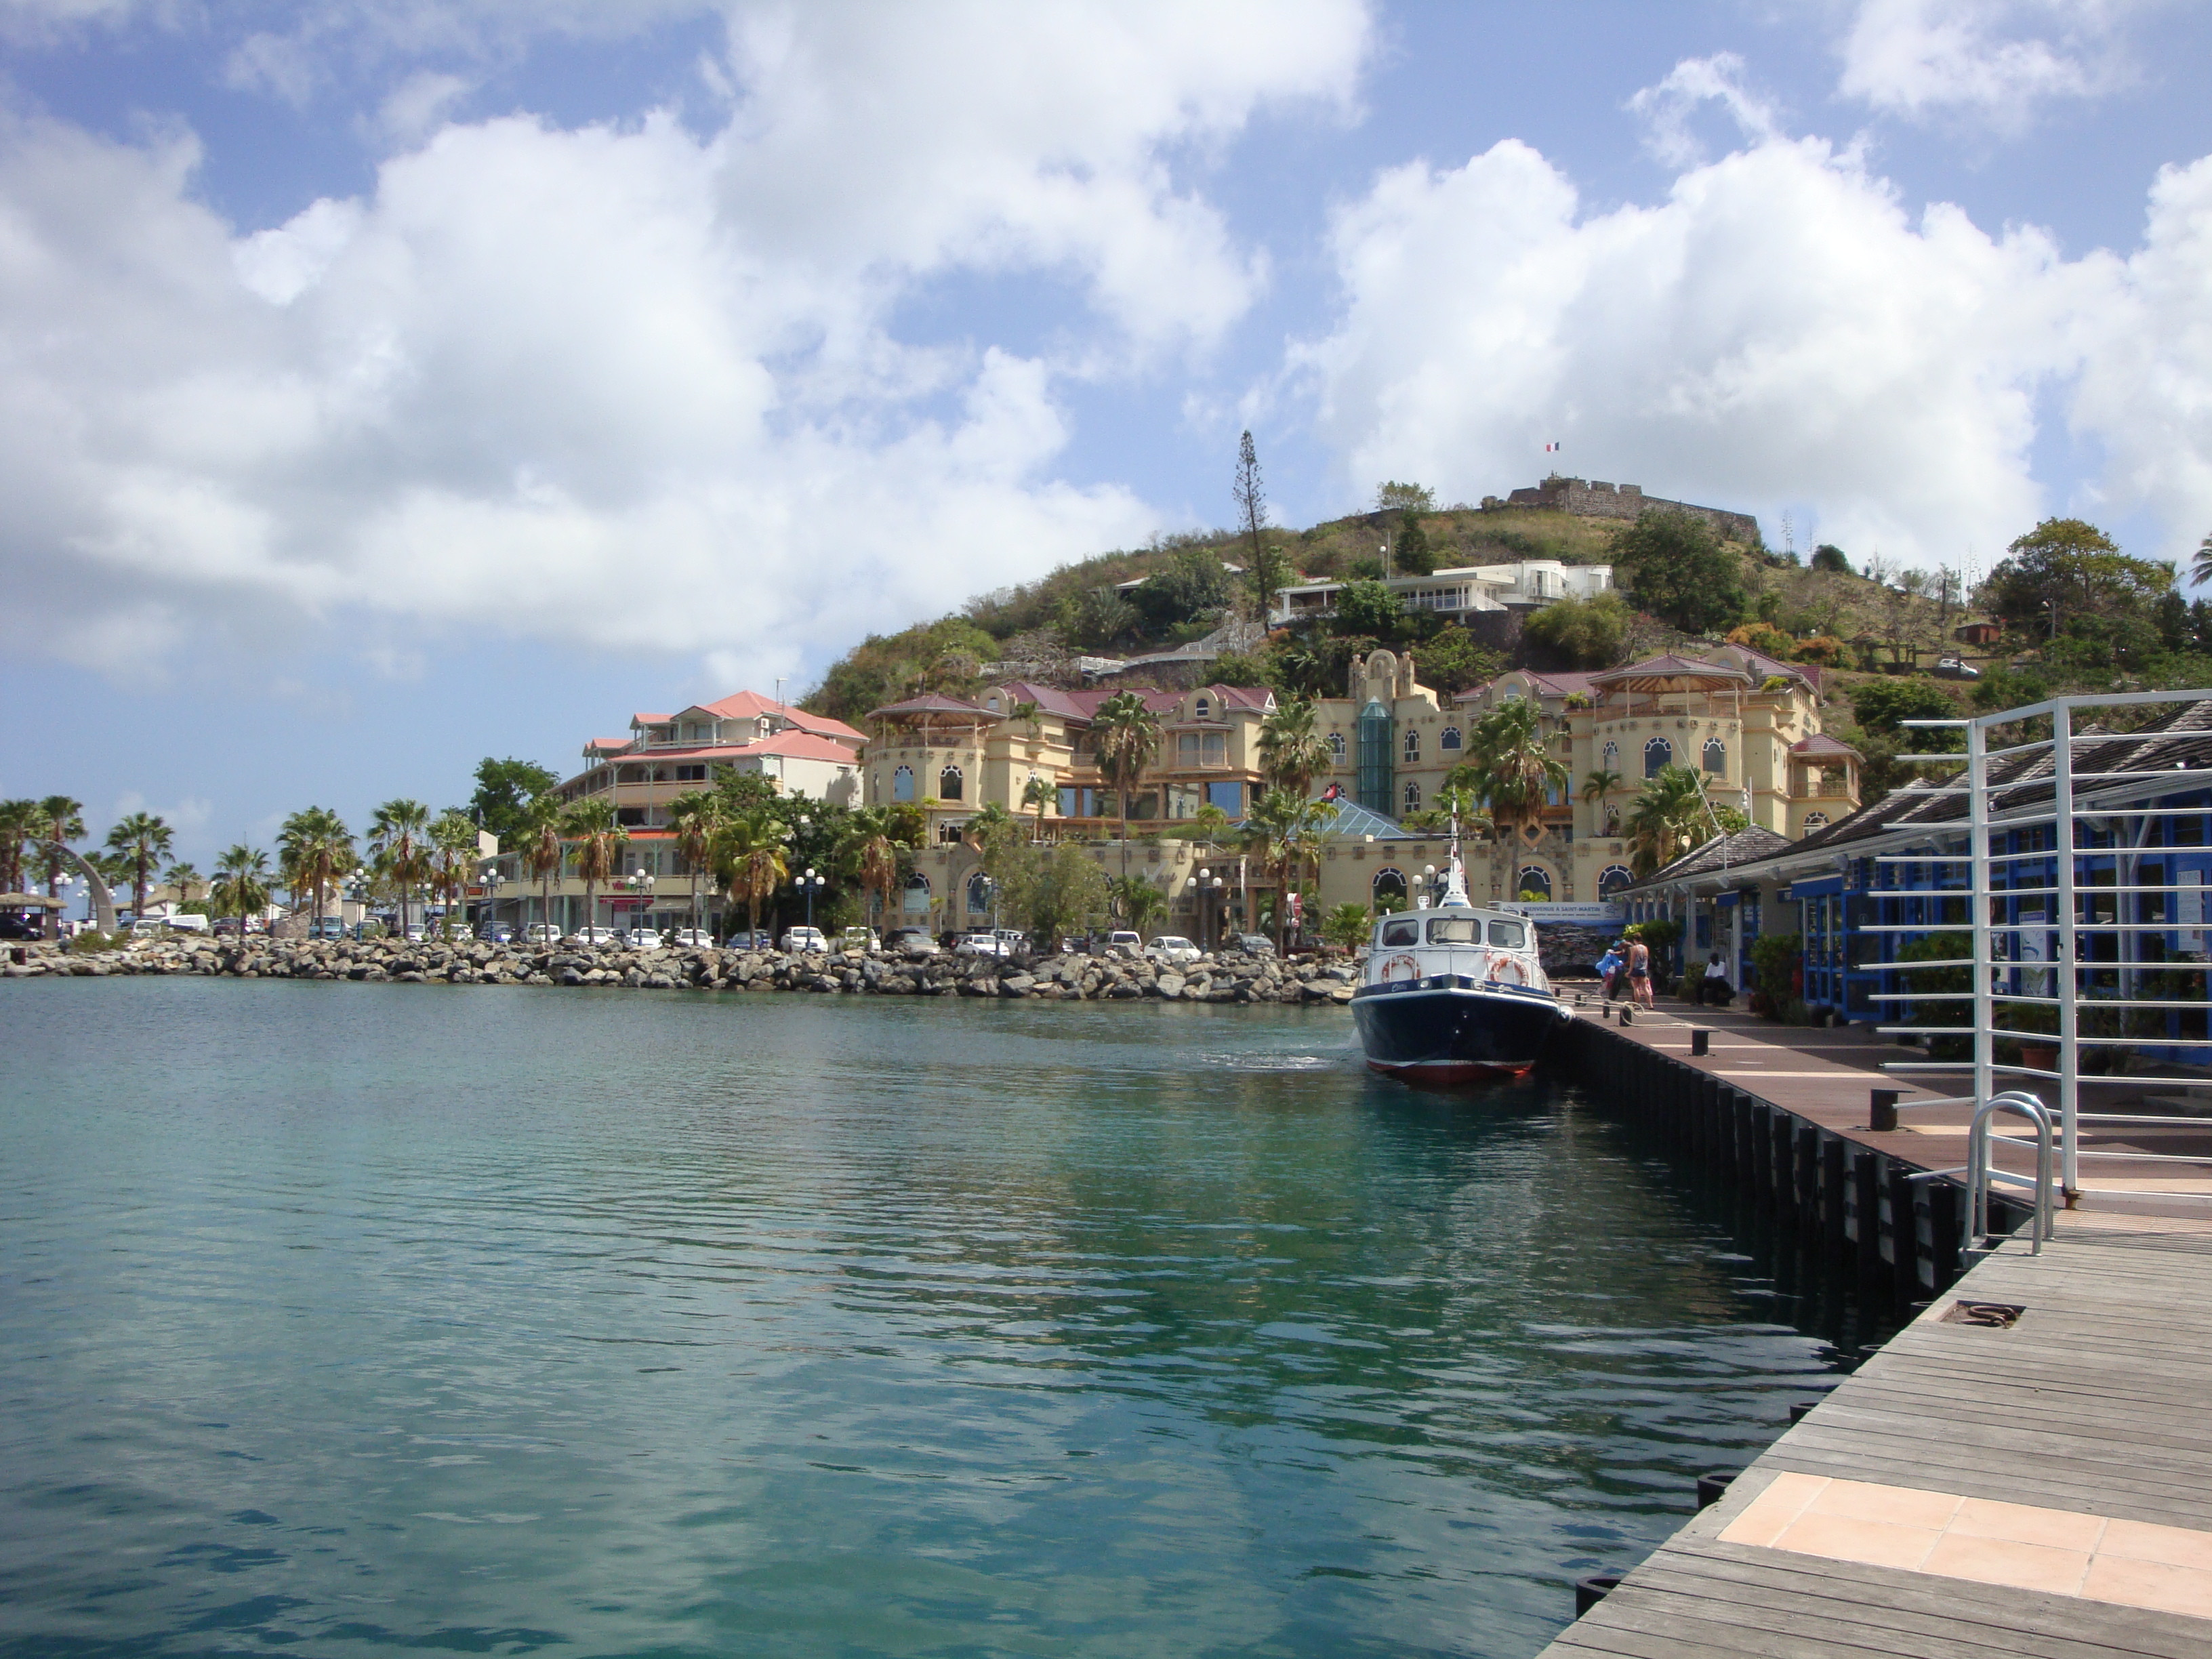 Port of call philipsburg st maarten the delicious divas - Marina port la royale marigot st martin ...